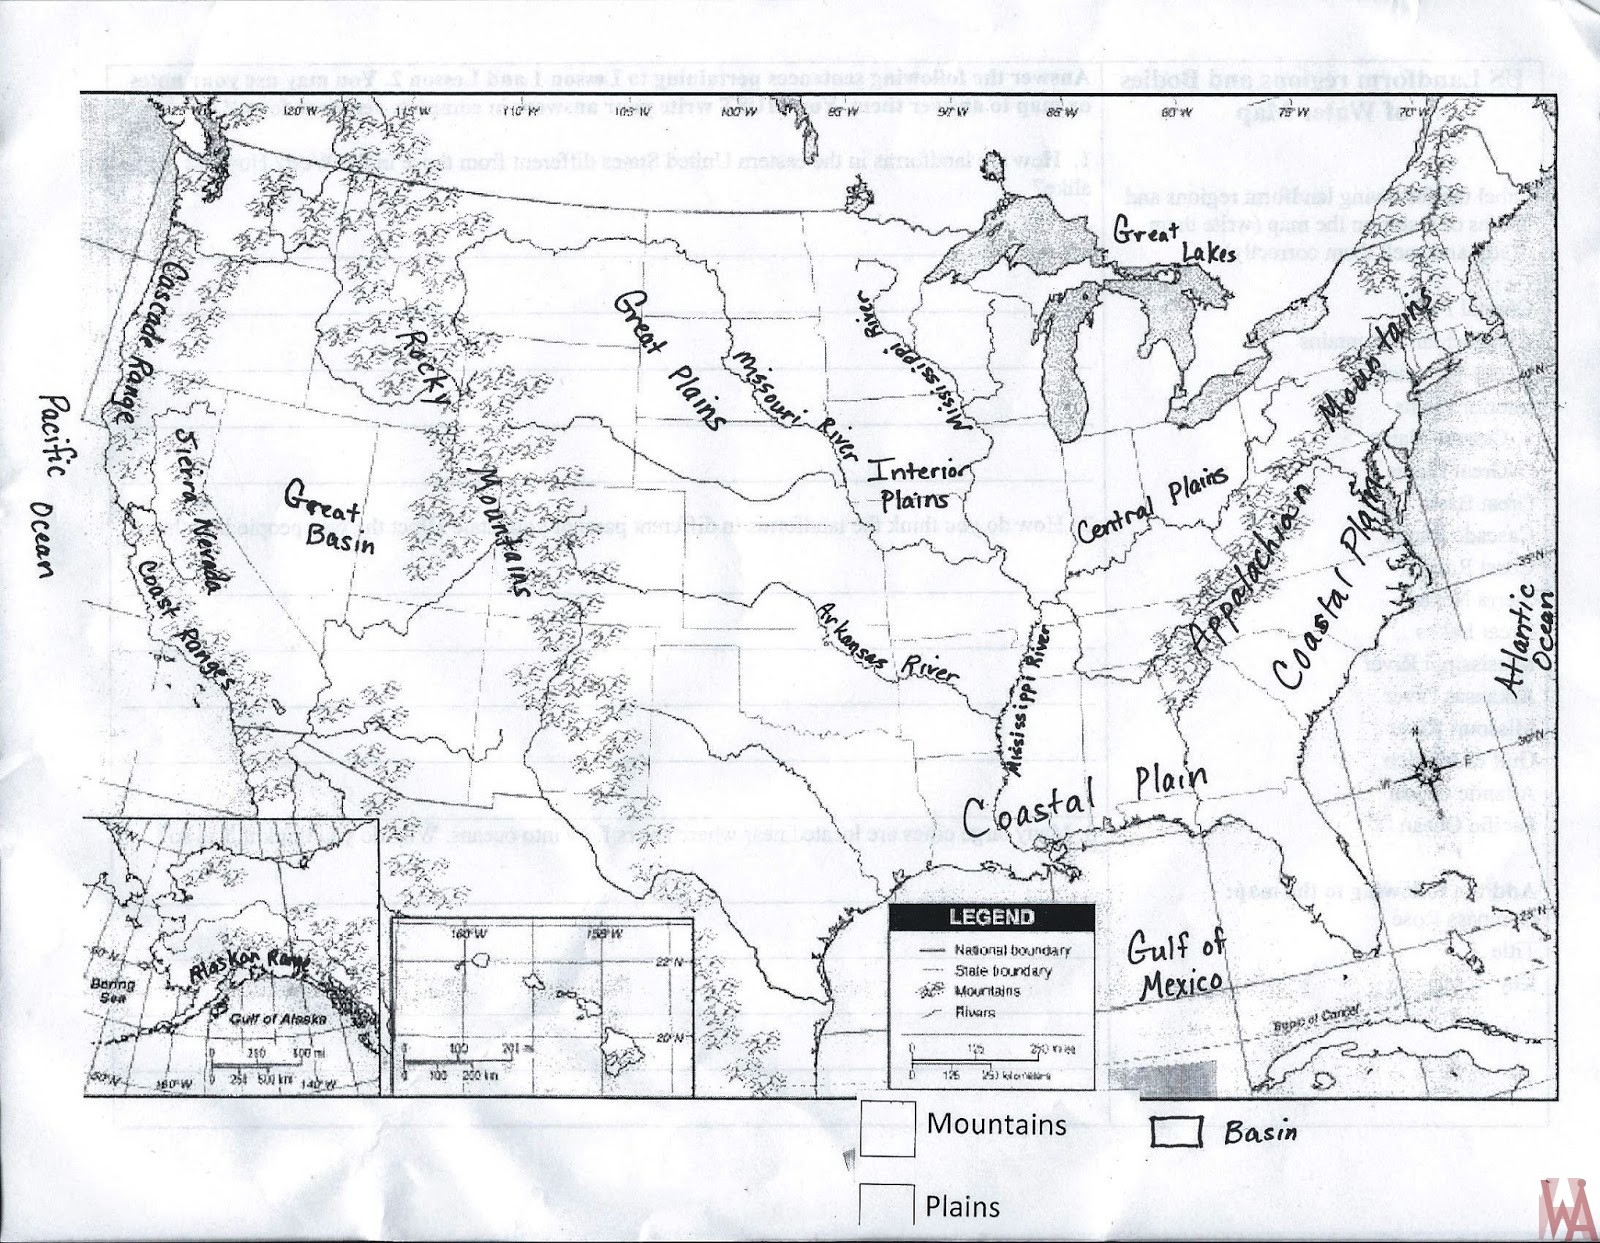 River Maps Of The Usa Whatsanswer - Us-map-of-rivers-lakes-and-mountains